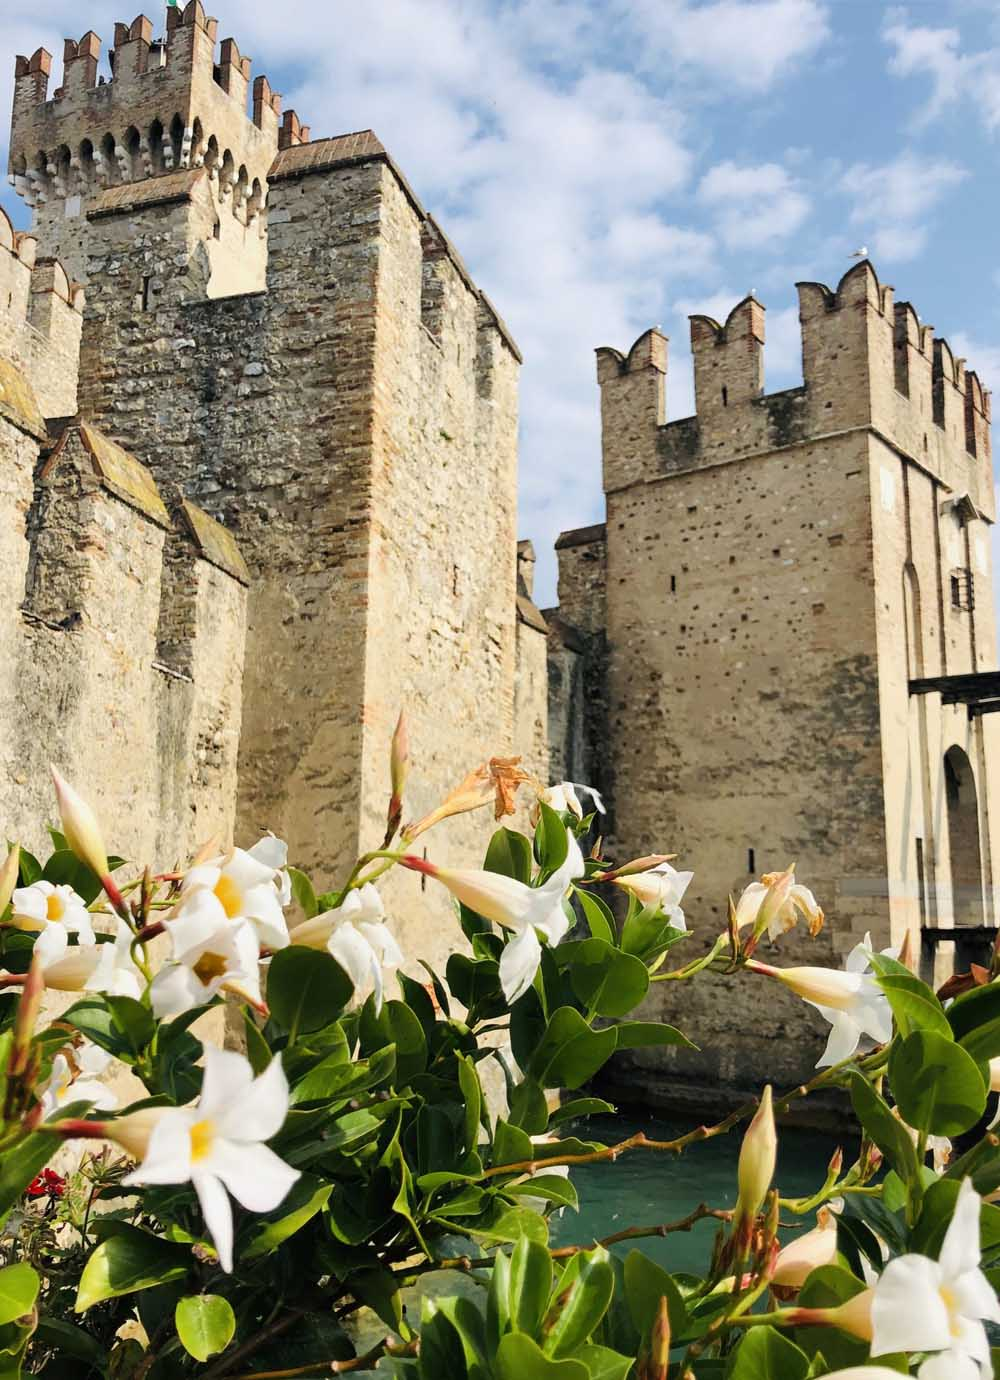 Tours - Sirmione and Valpolicella wines (photo 2)